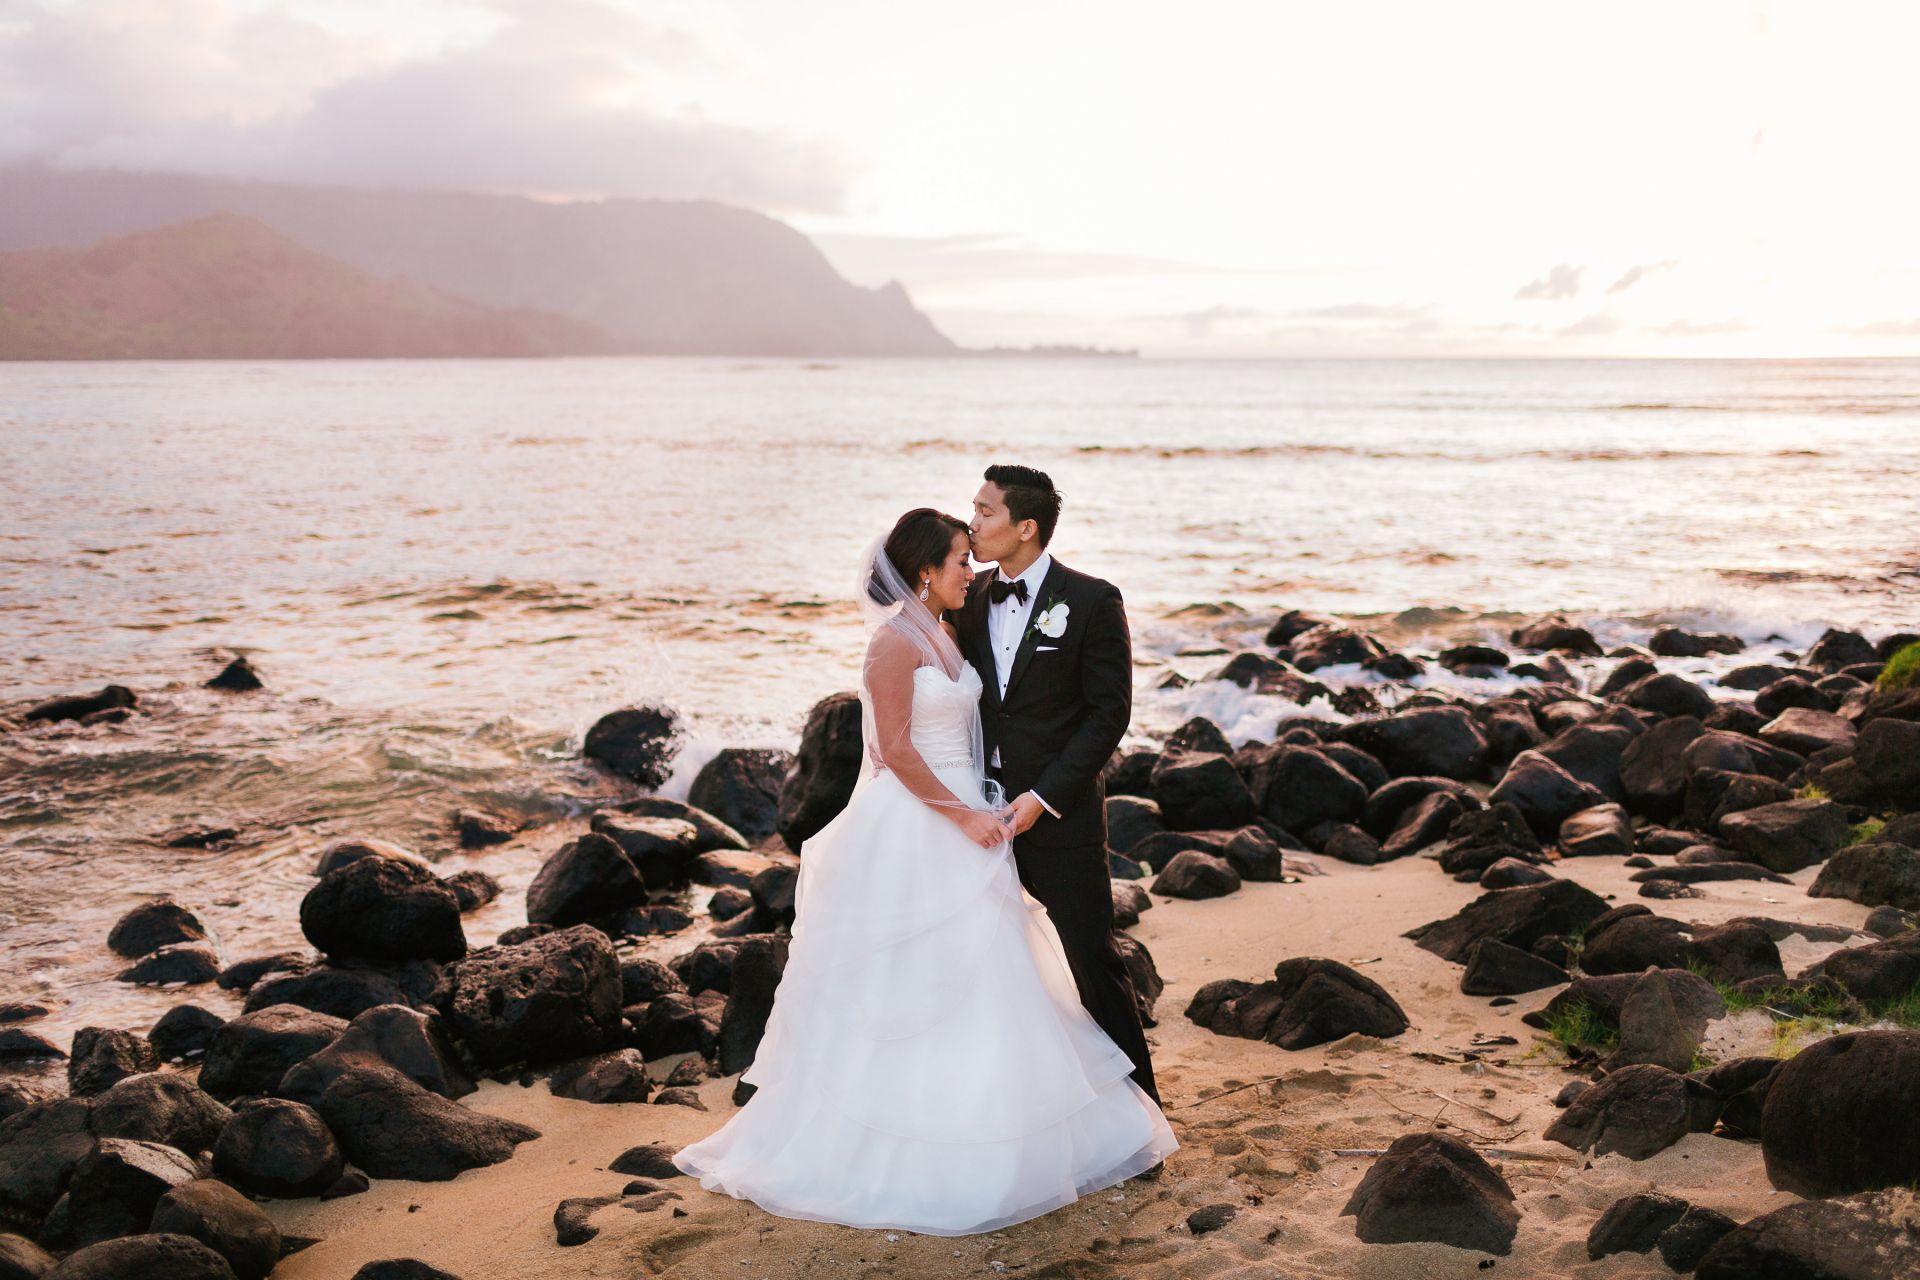 Mindy + Cary | Kauai County, Hawaii | St Regis Princeville